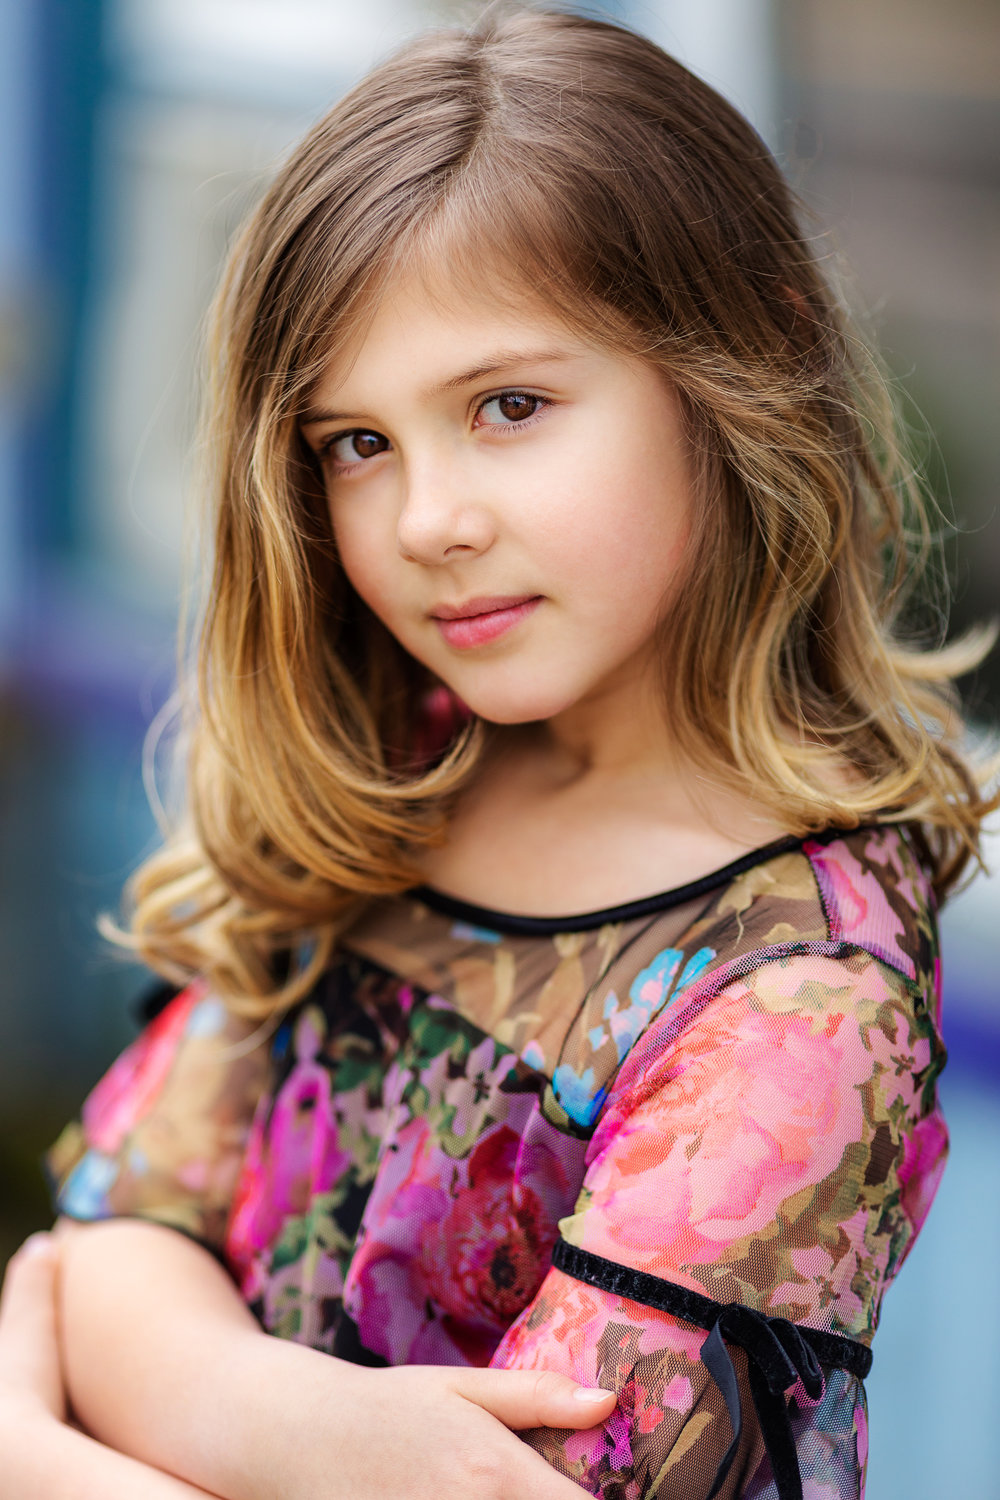 ariellanoellephotography-seattle-area-children-headshots-child-portraiture-actor-model-bellevue-kirkland-redmond-1.jpg